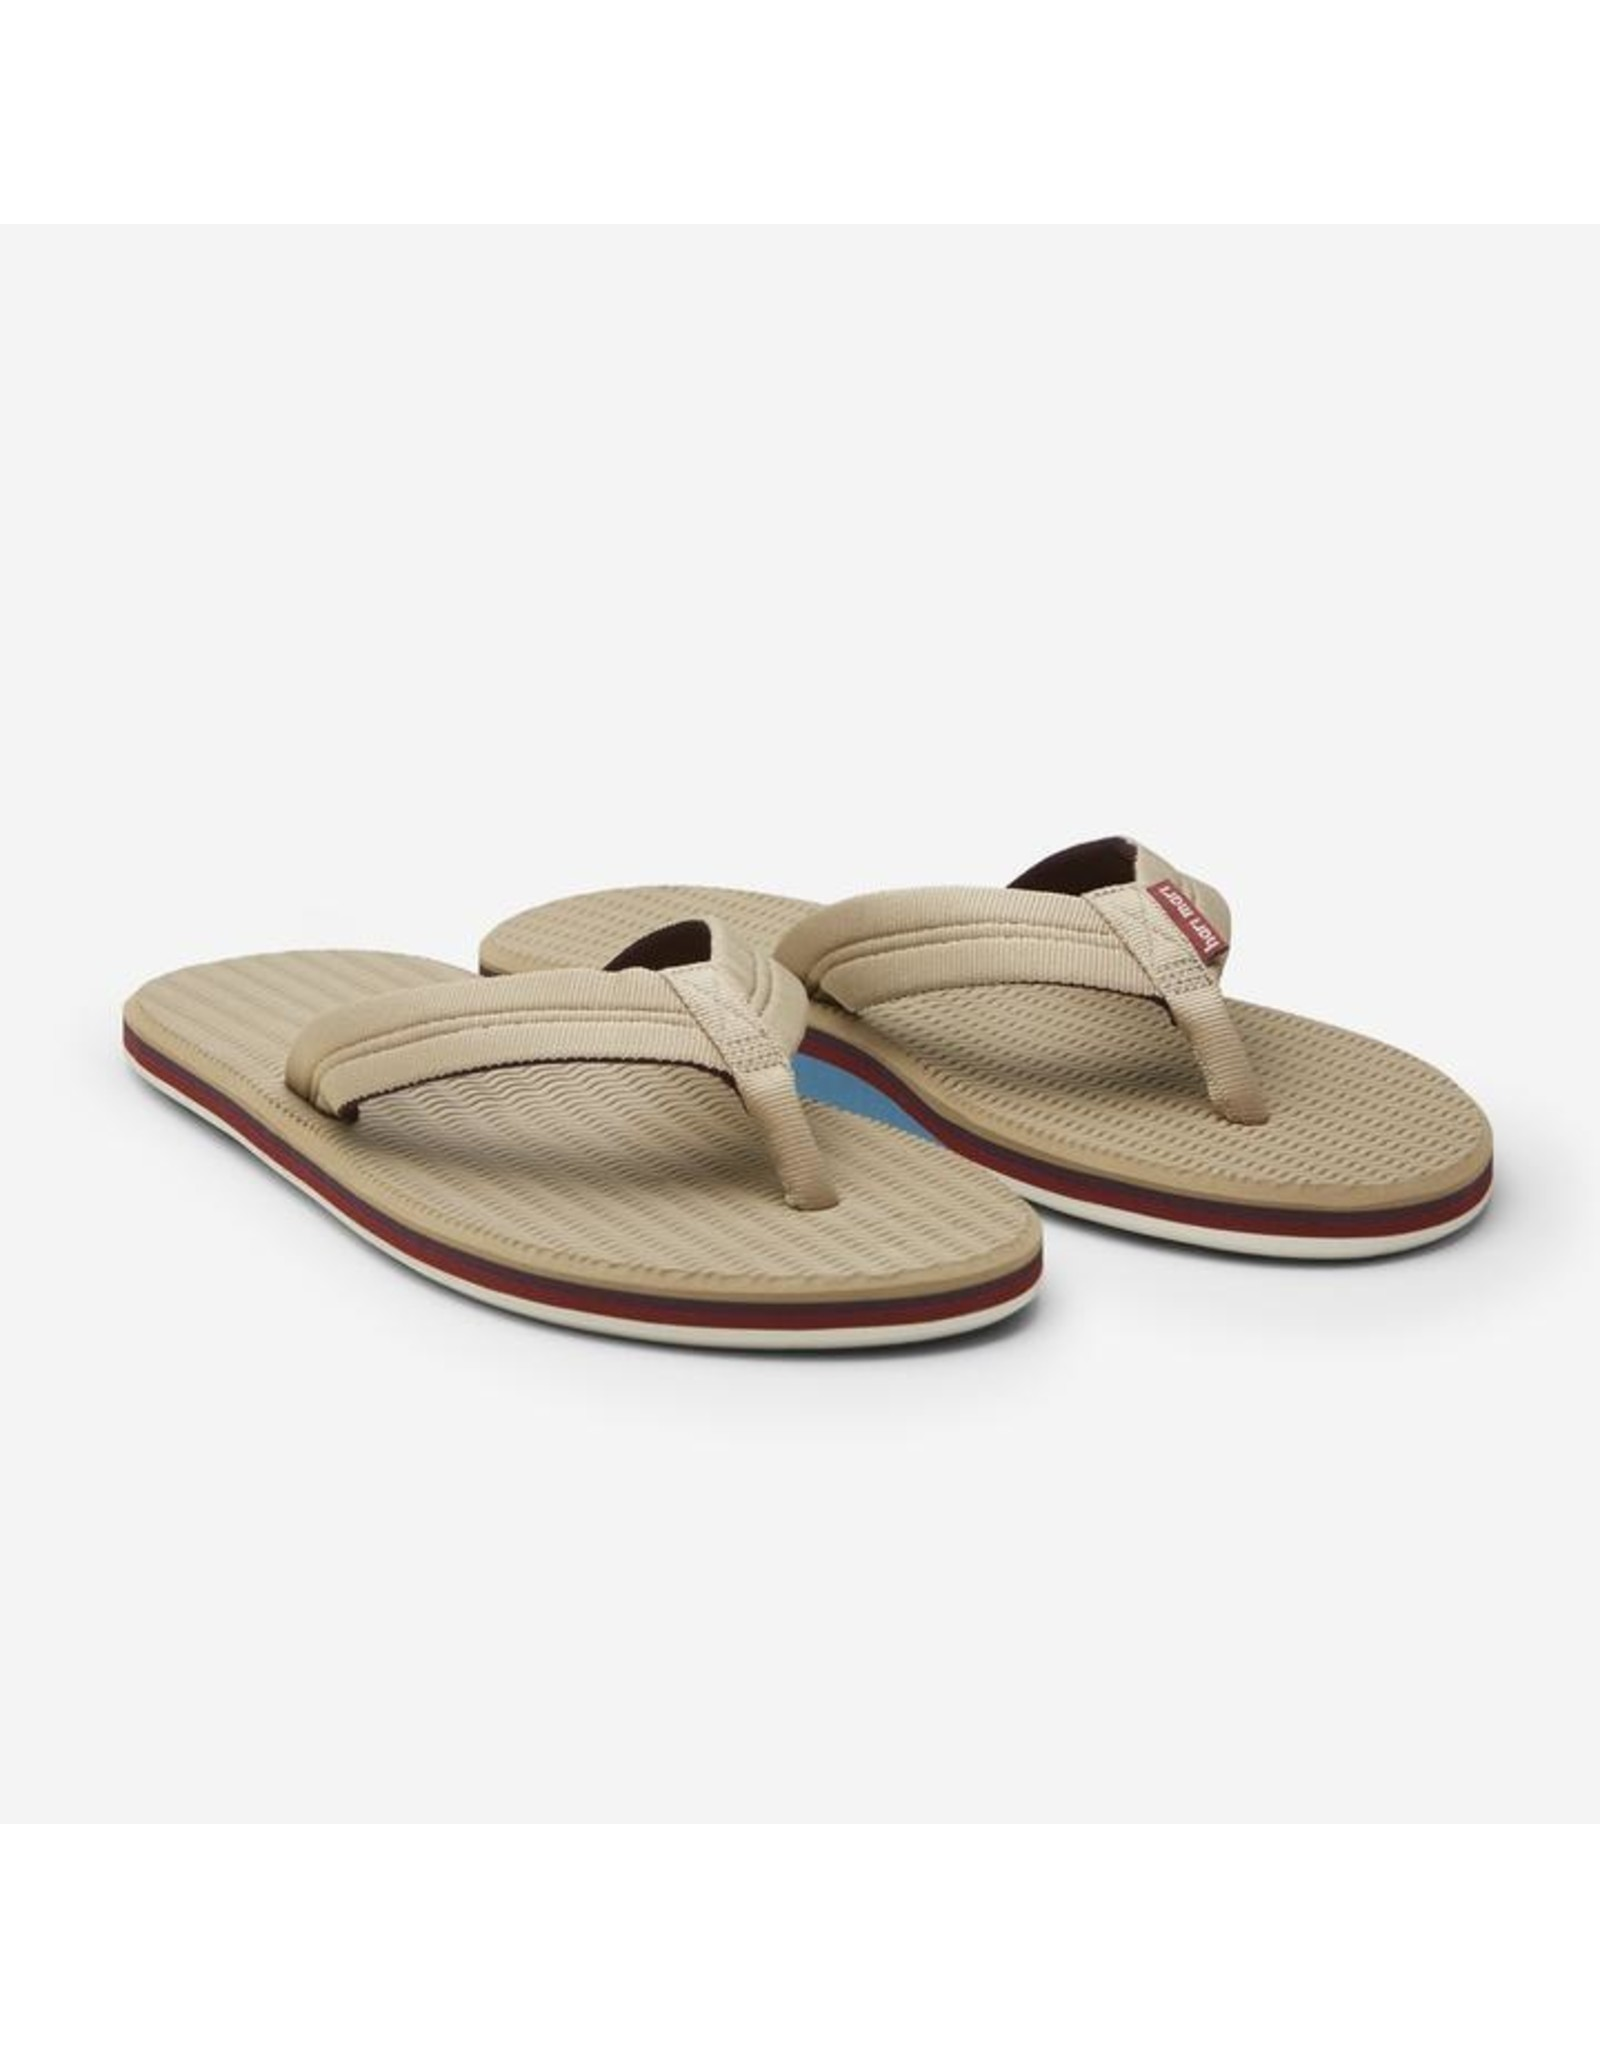 HARI MARI MEN'S DUNES-TAN